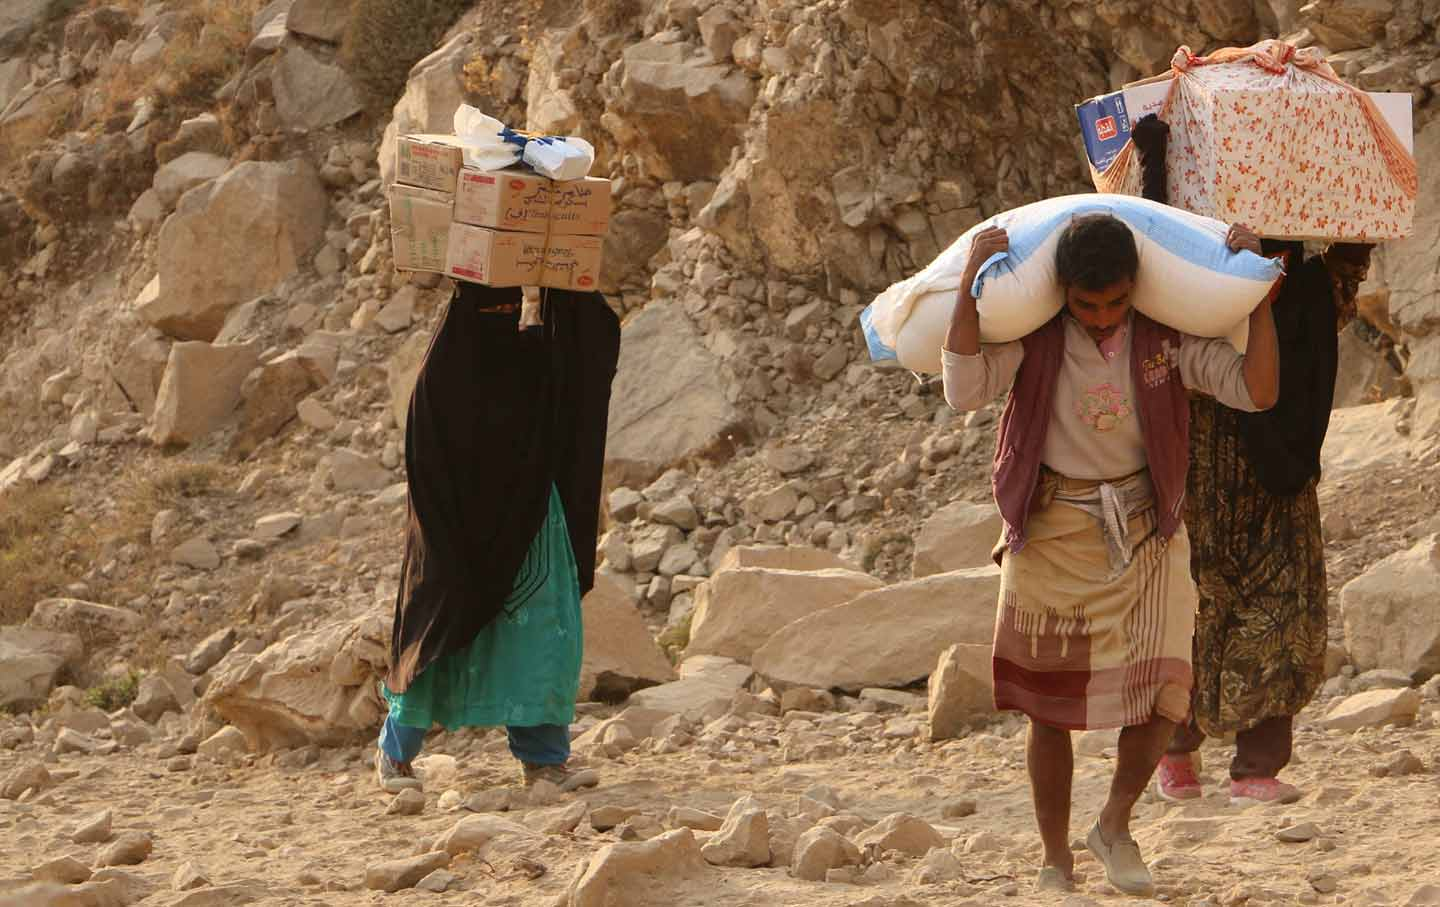 Yemenis carry relief supplies